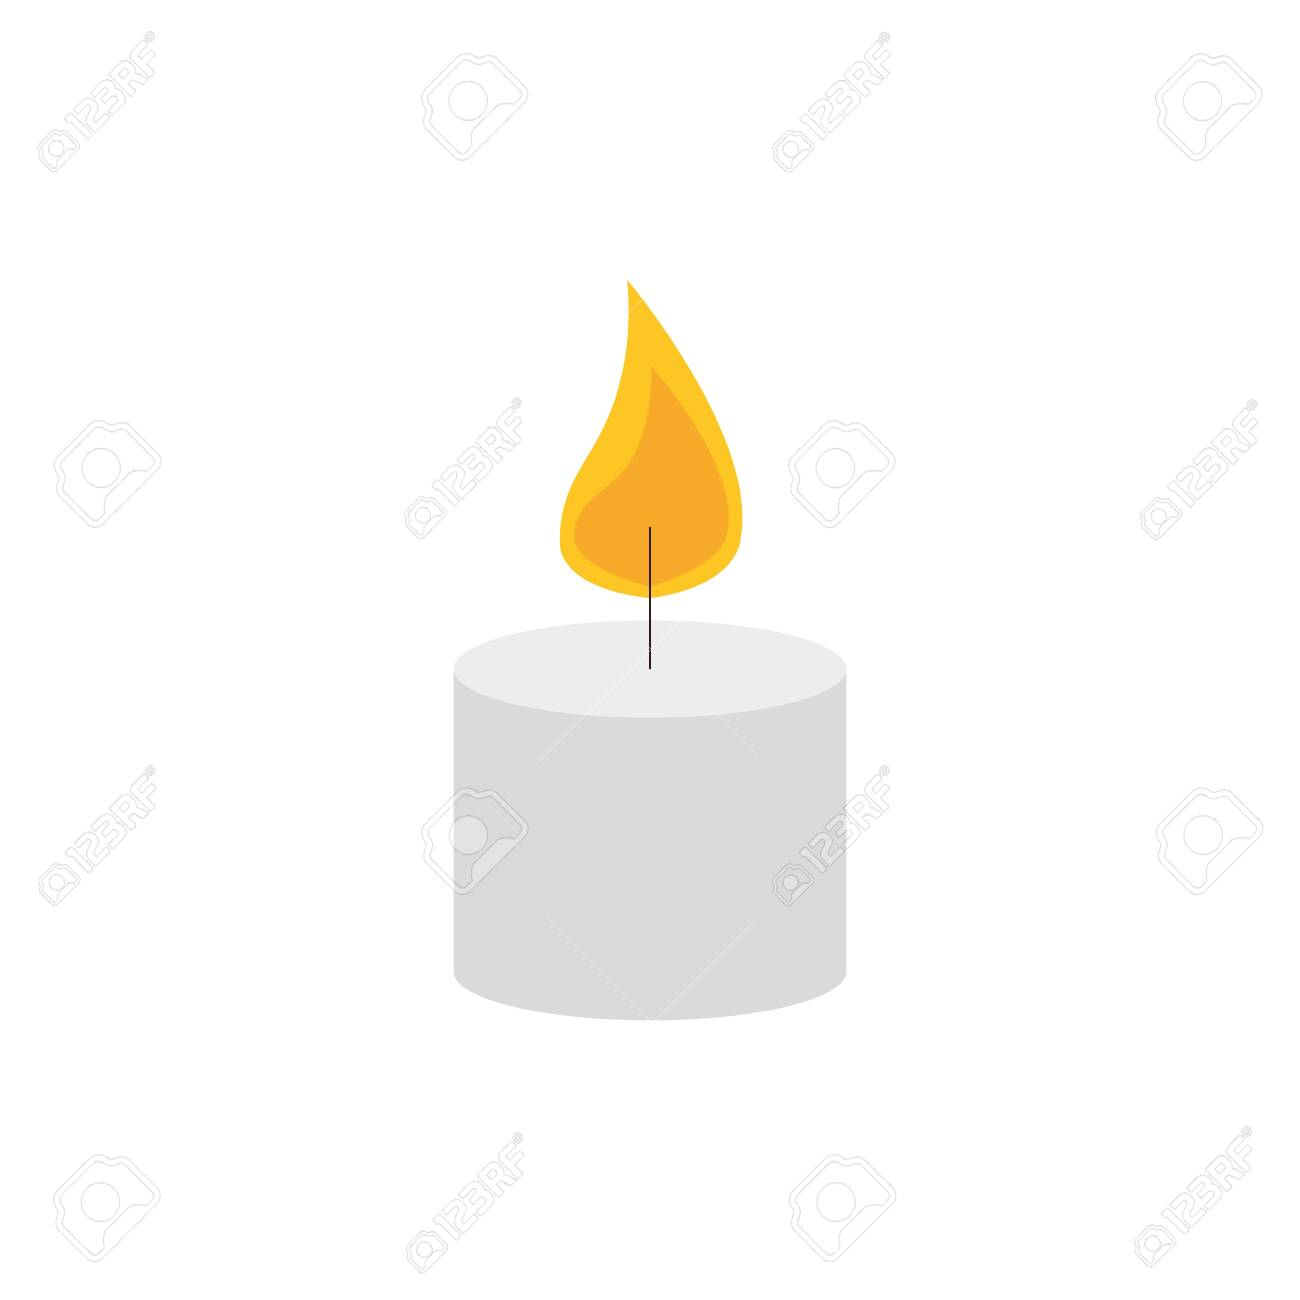 paraffin candle with flame icon vector illustration design - 142715195